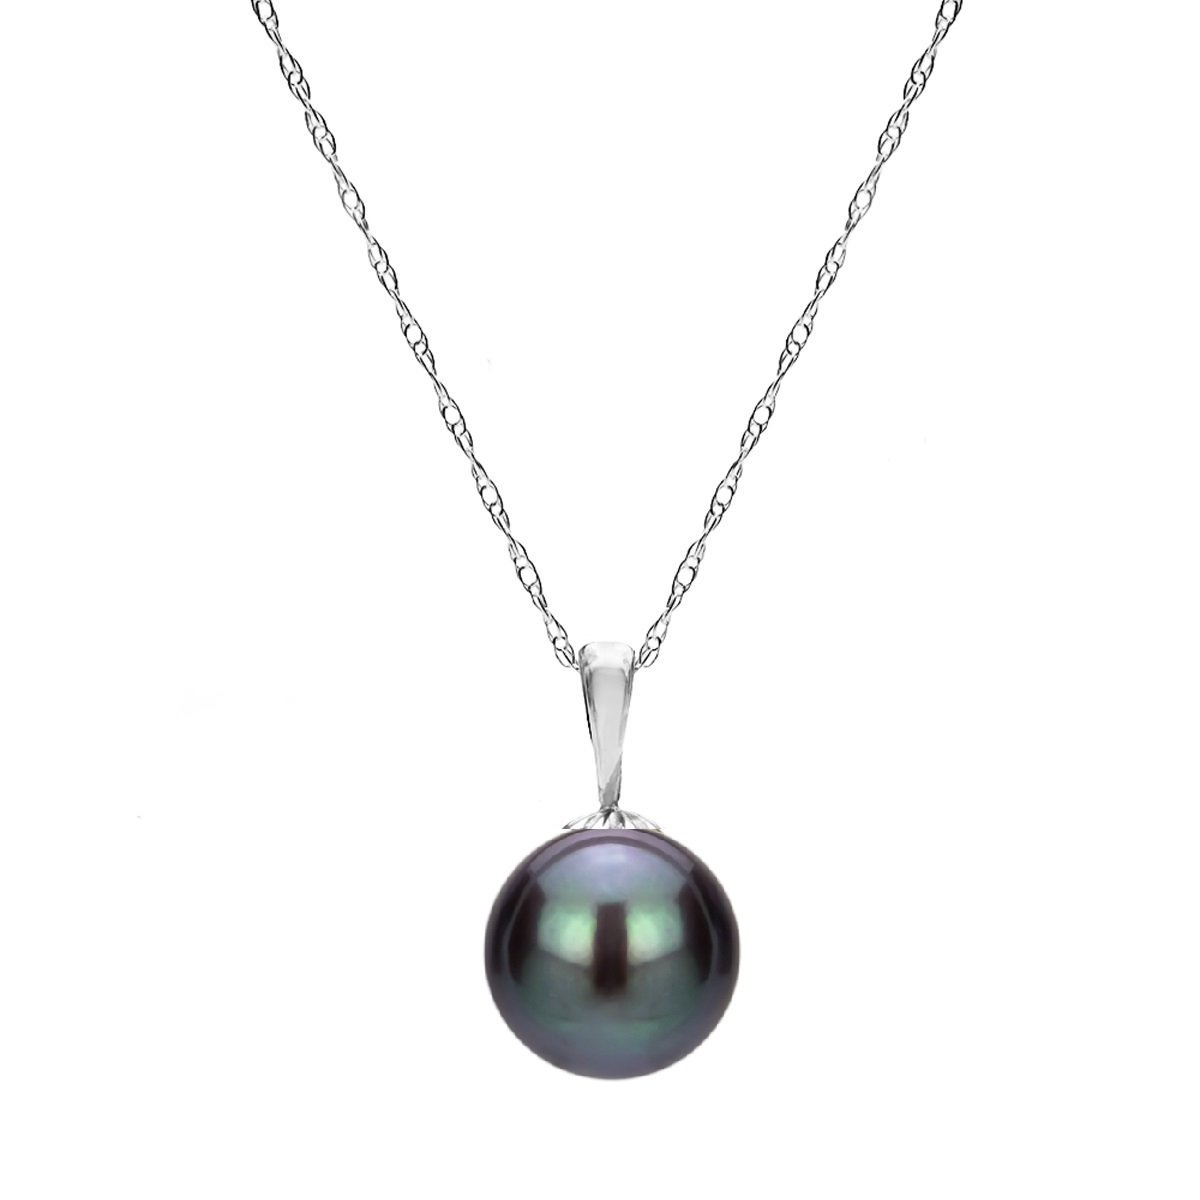 14K White Gold Black Freshwater Cultured Pearl Necklaces for Teen Girls Pendant 18 inch